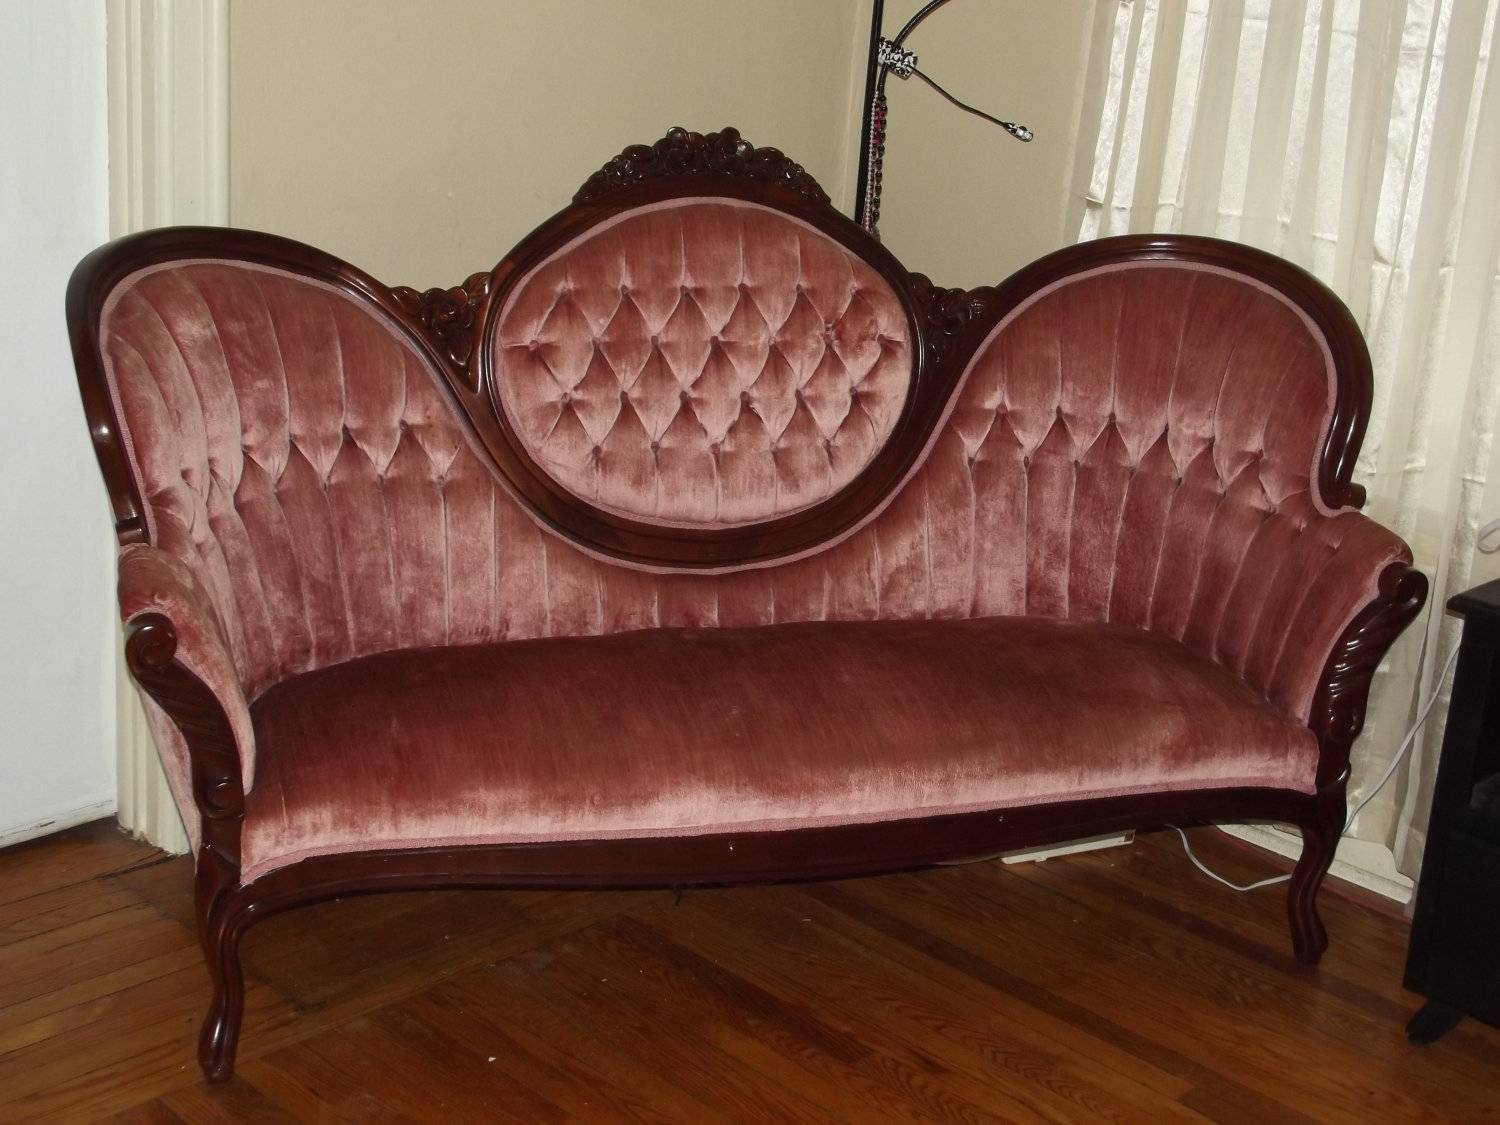 Sofas Center : Identifying Antique Sofa Stylesantique with regard to Vintage Sofa Styles (Image 19 of 30)